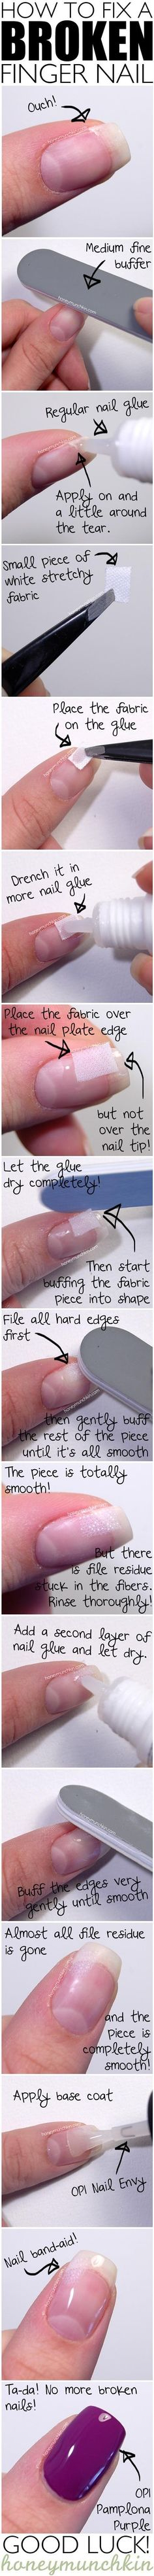 How to fix a broken nail-NEED